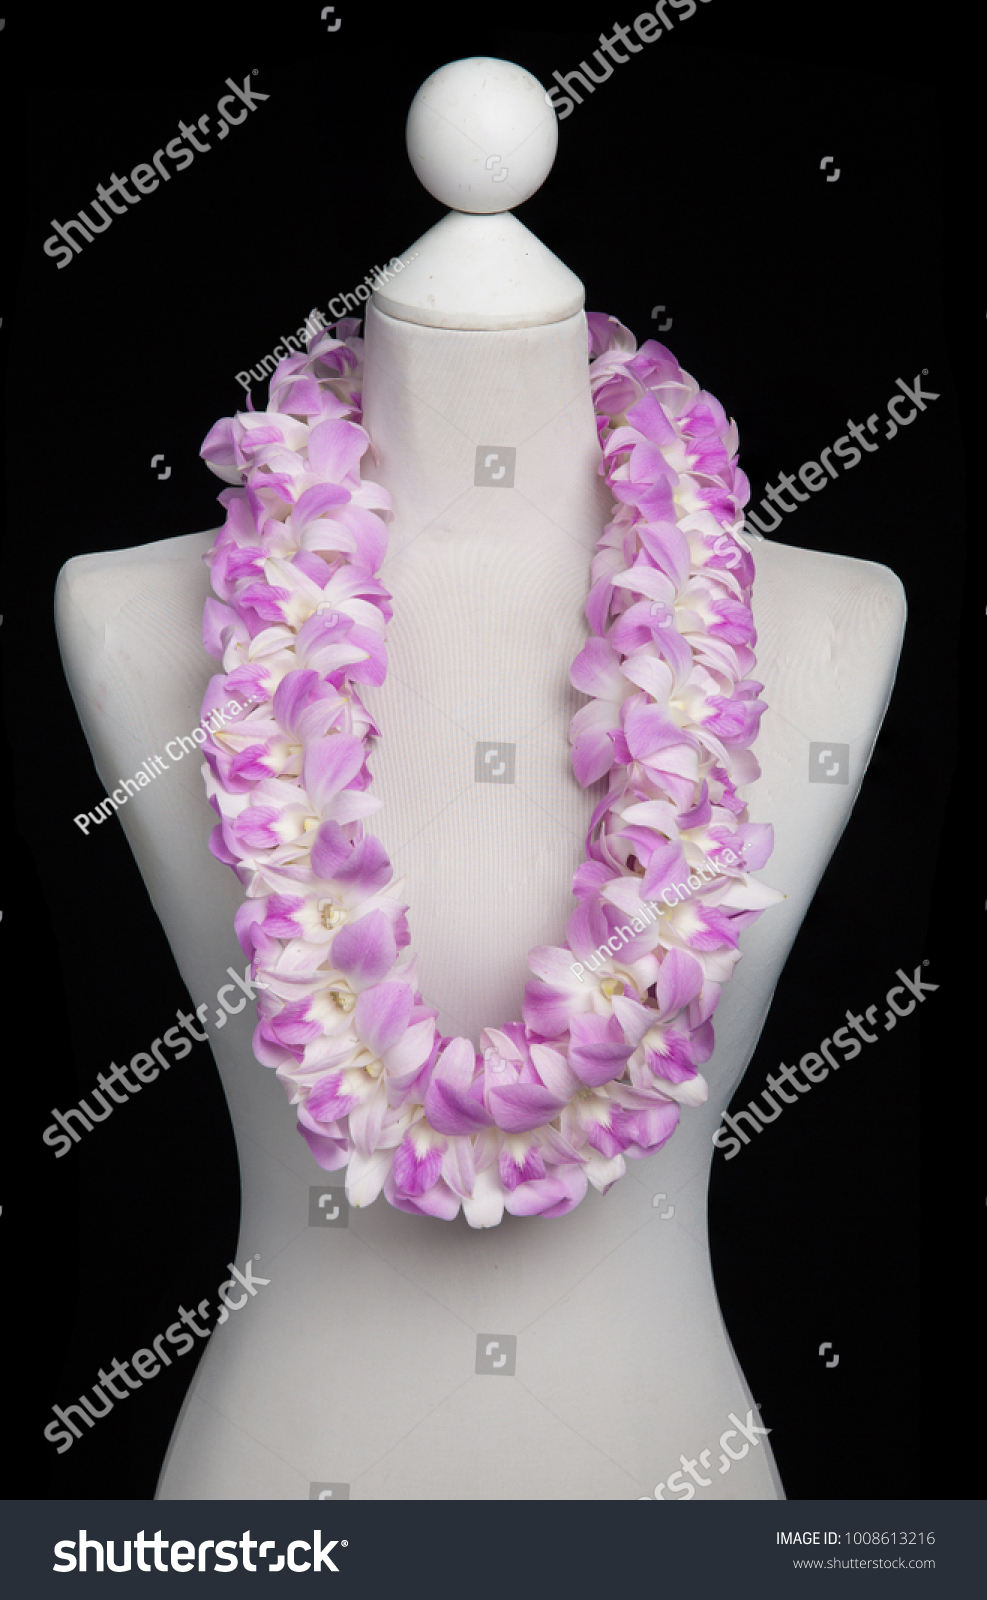 Hawaii flowers lei necklace made orchid stock photo 1008613216 hawaii flowers lei necklace made from orchid flower double light pink dendrobium izmirmasajfo Images